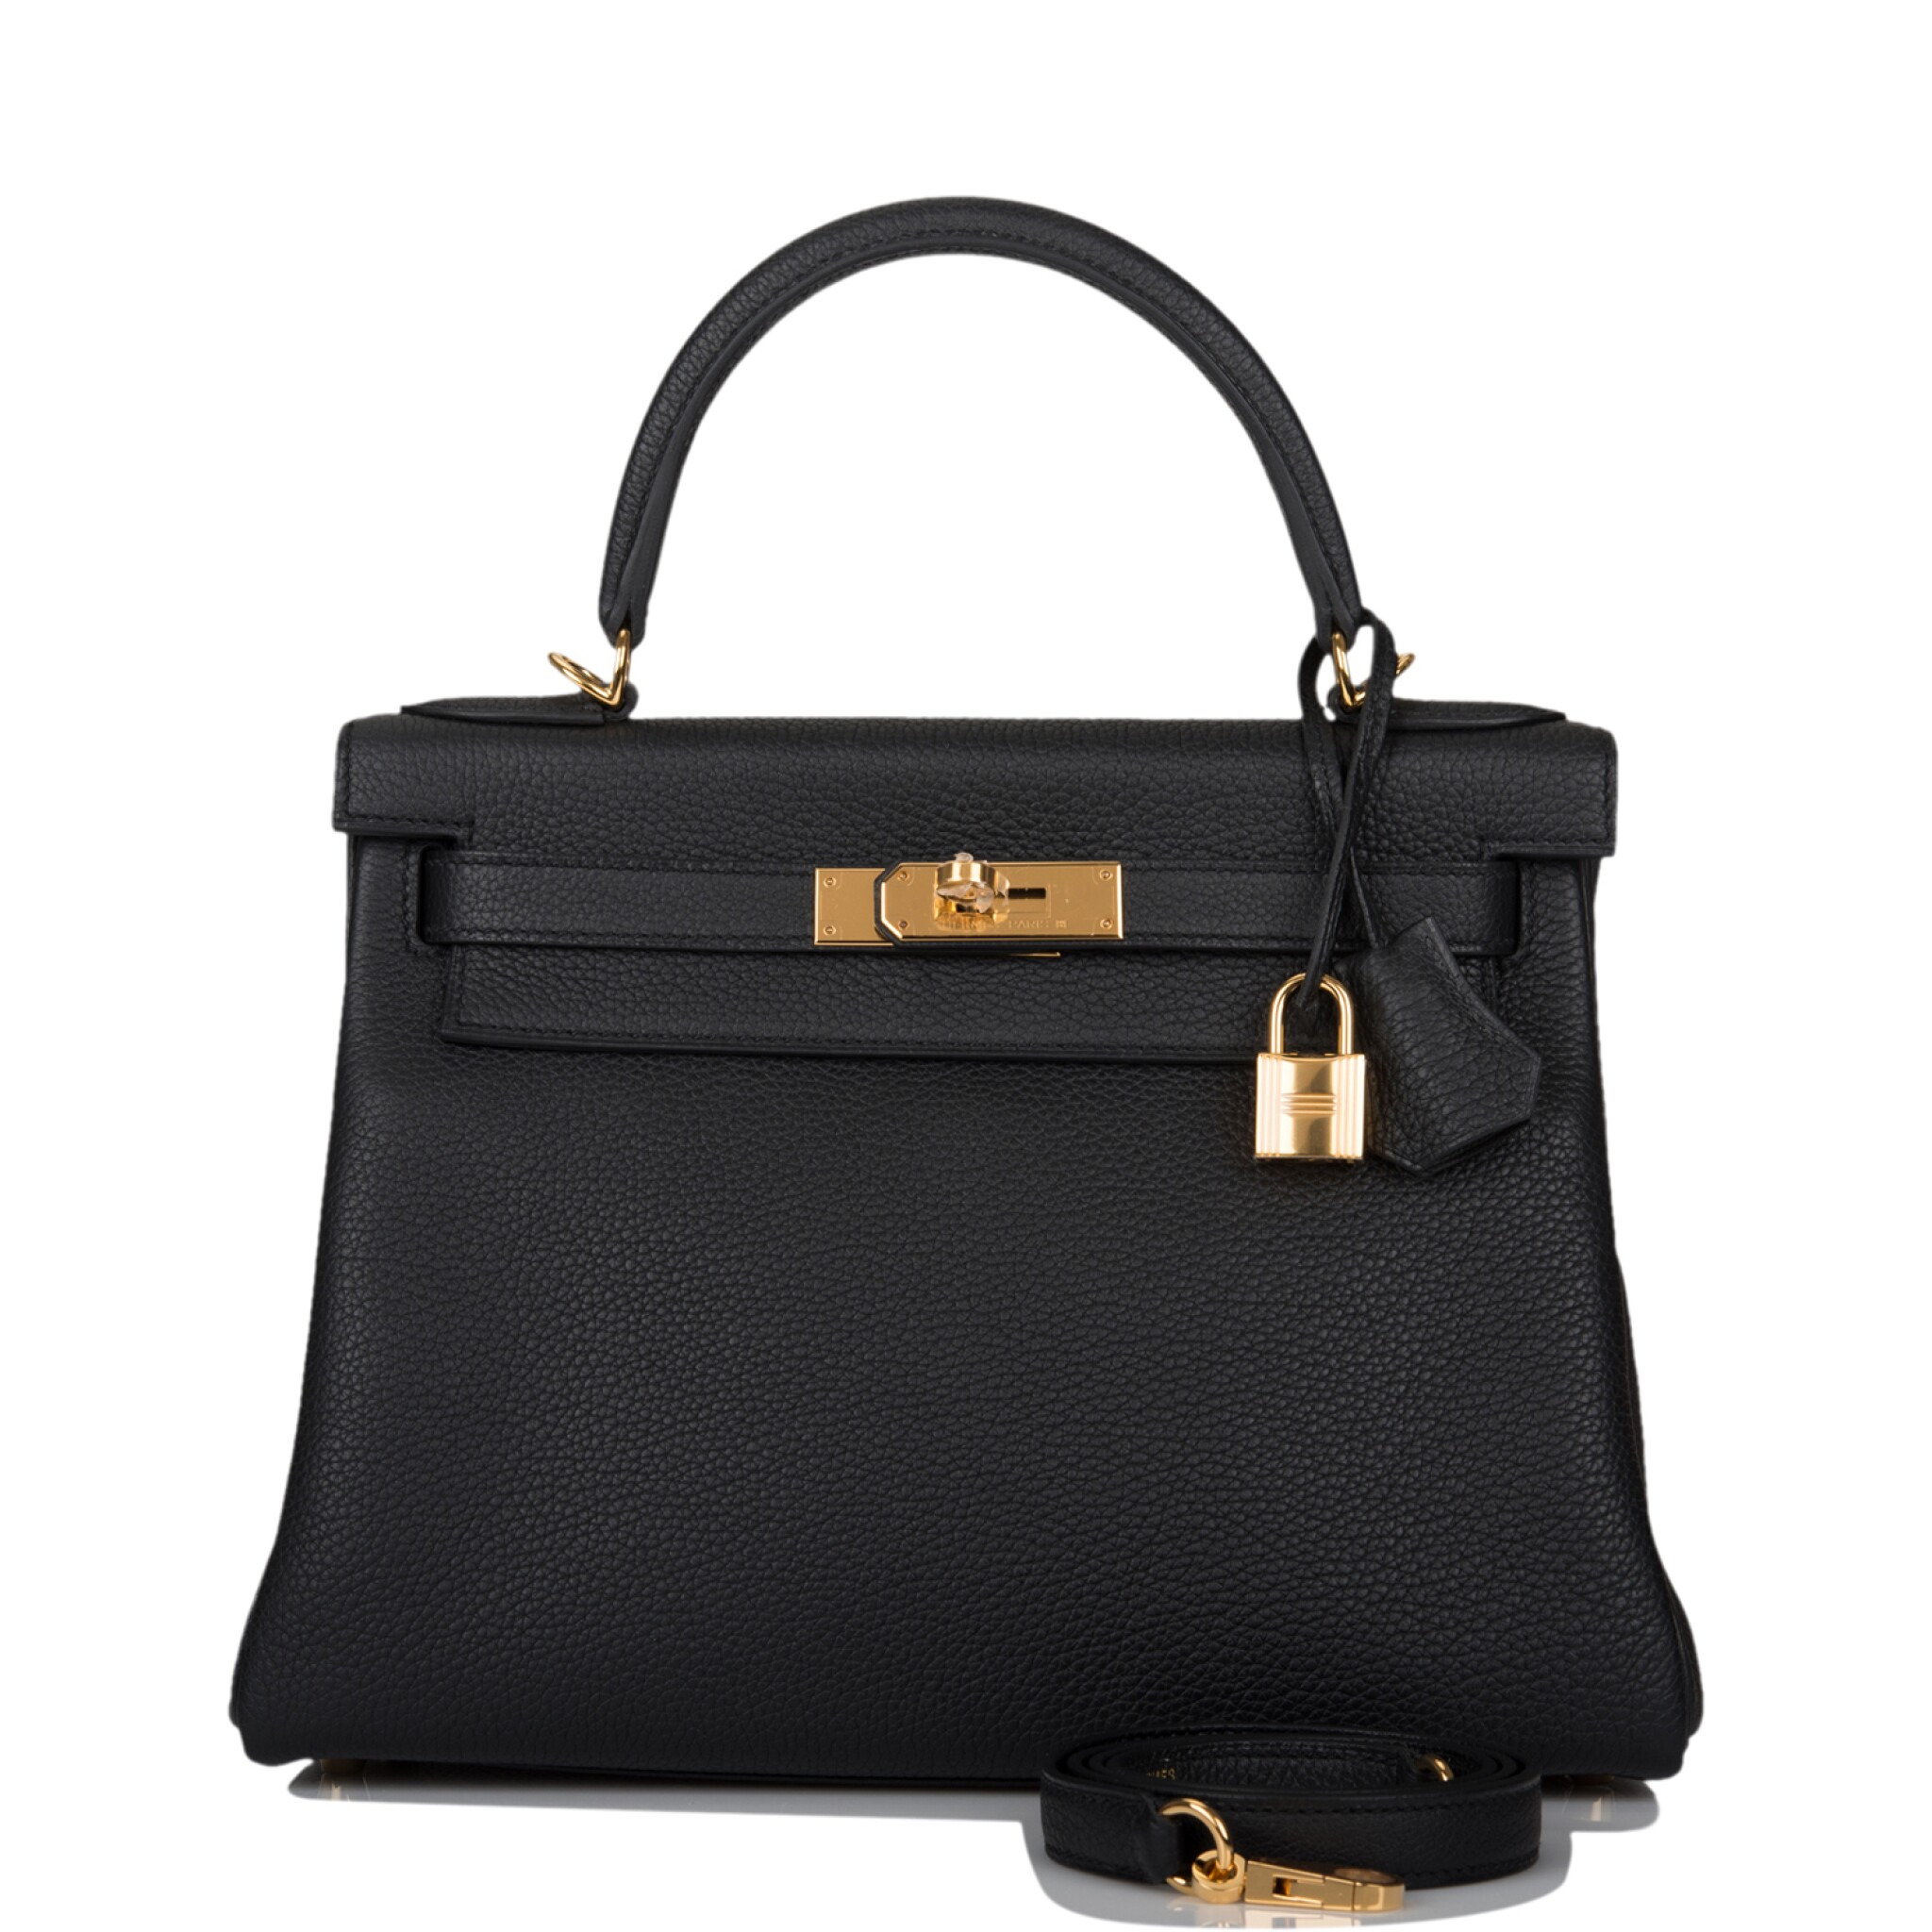 View full screen - View 1 of Lot 52. HERMÈS   BLACK RETOURNE KELLY 28CM OF TOGO LEATHER WITH GOLD HARDWARE.